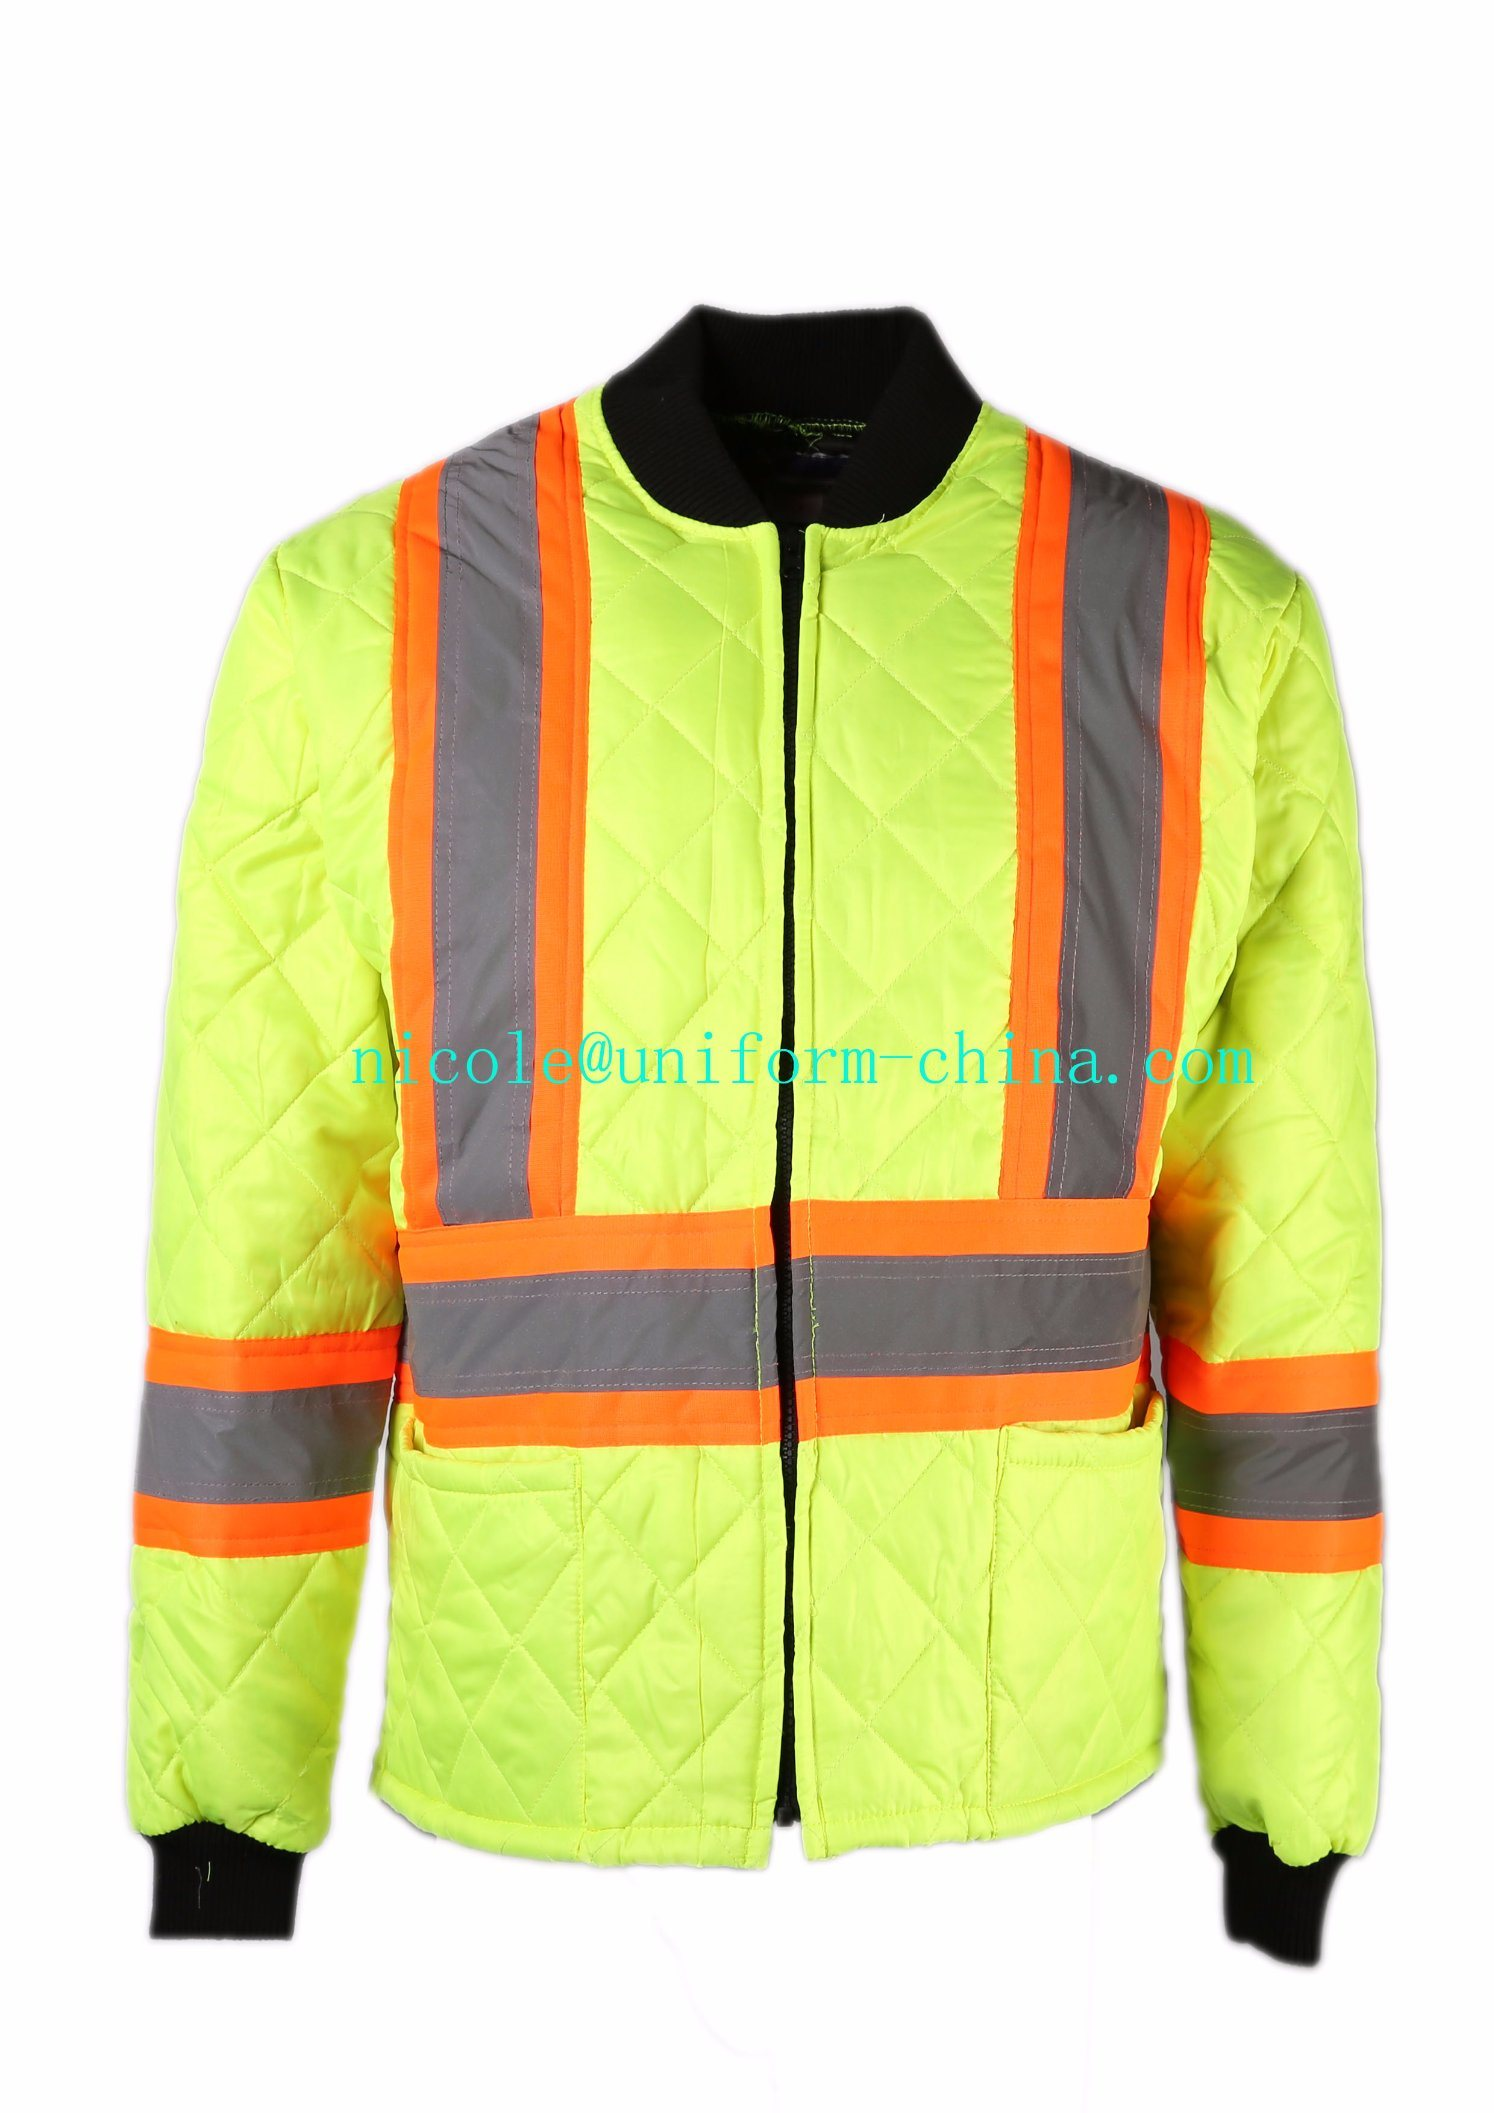 Hi-Vis Yellow Working Safety Winter Thermal Warm Quilted Freezer Jacket with Reflective Tape